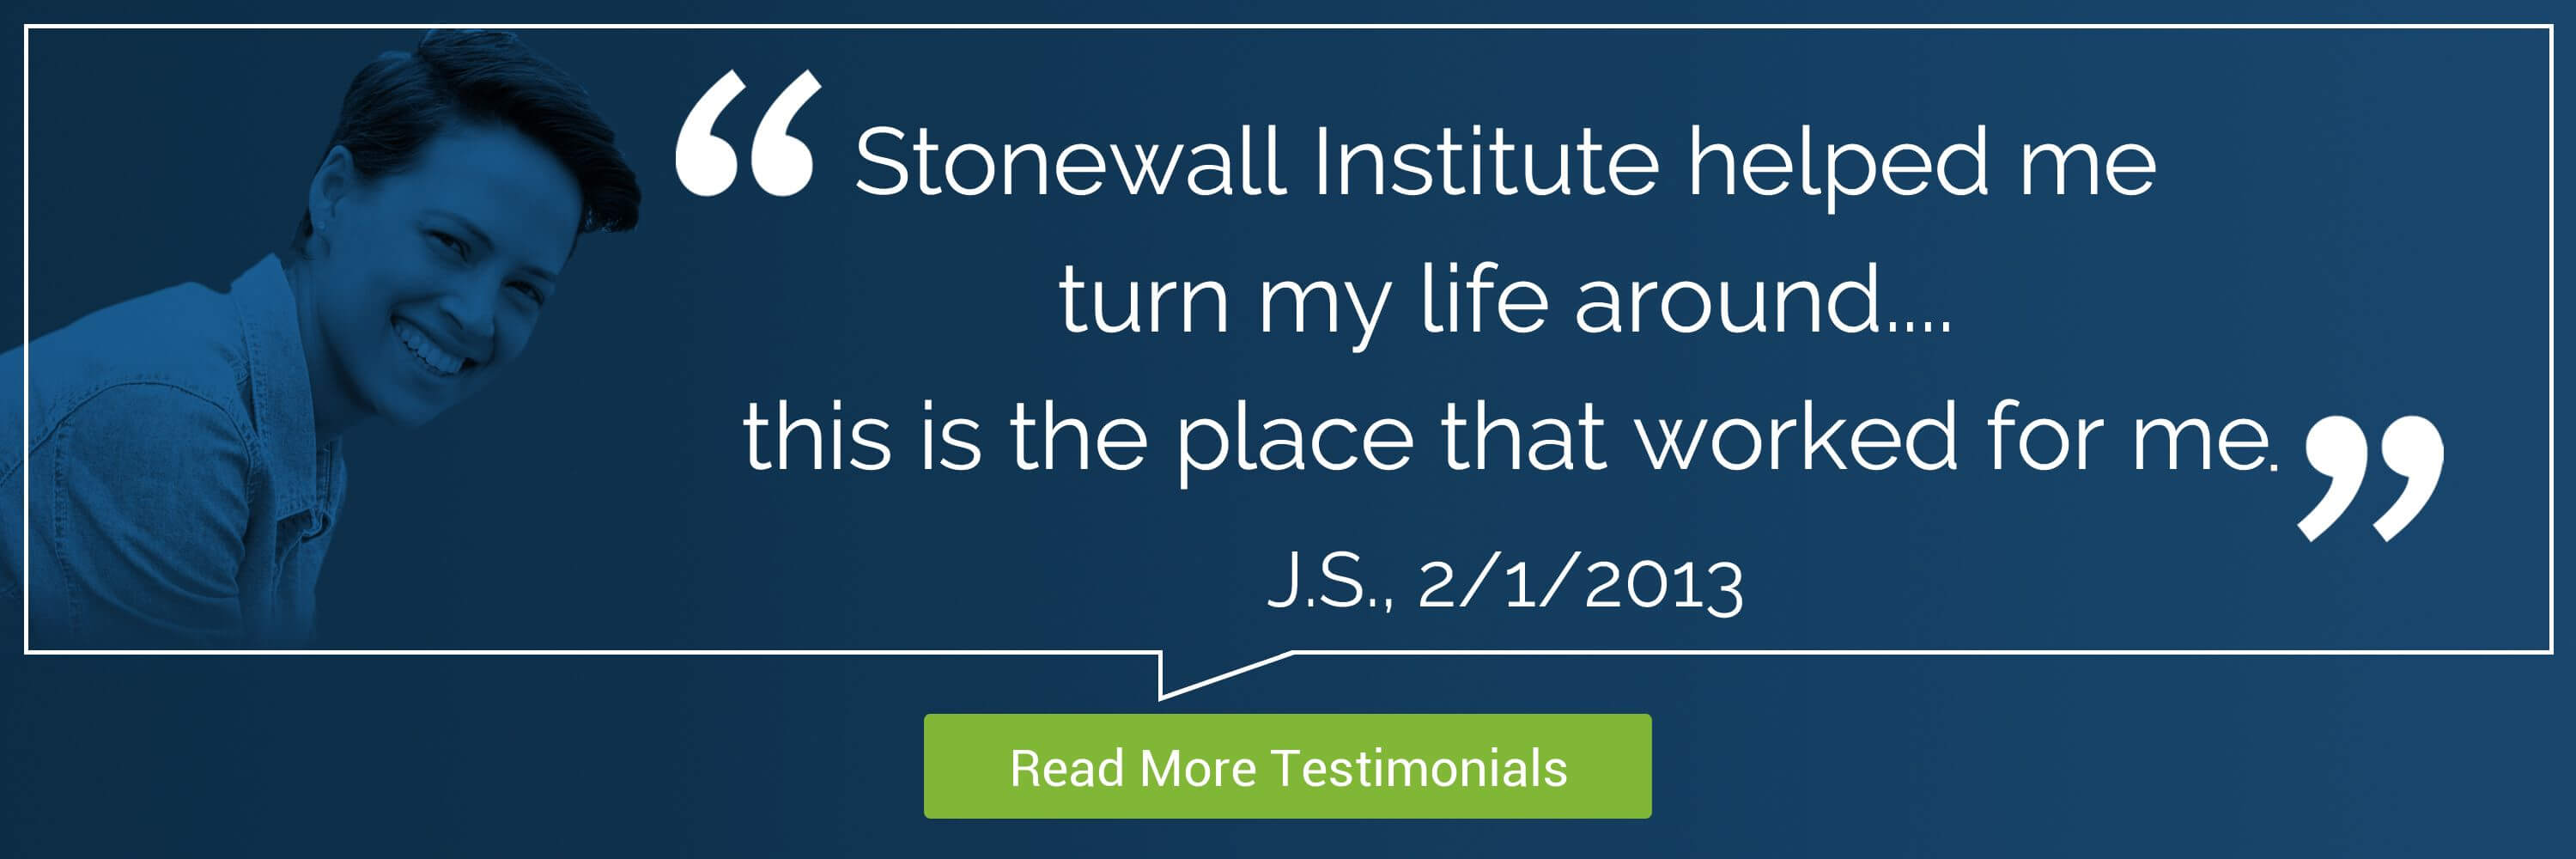 Stonewall Institute Testimonial